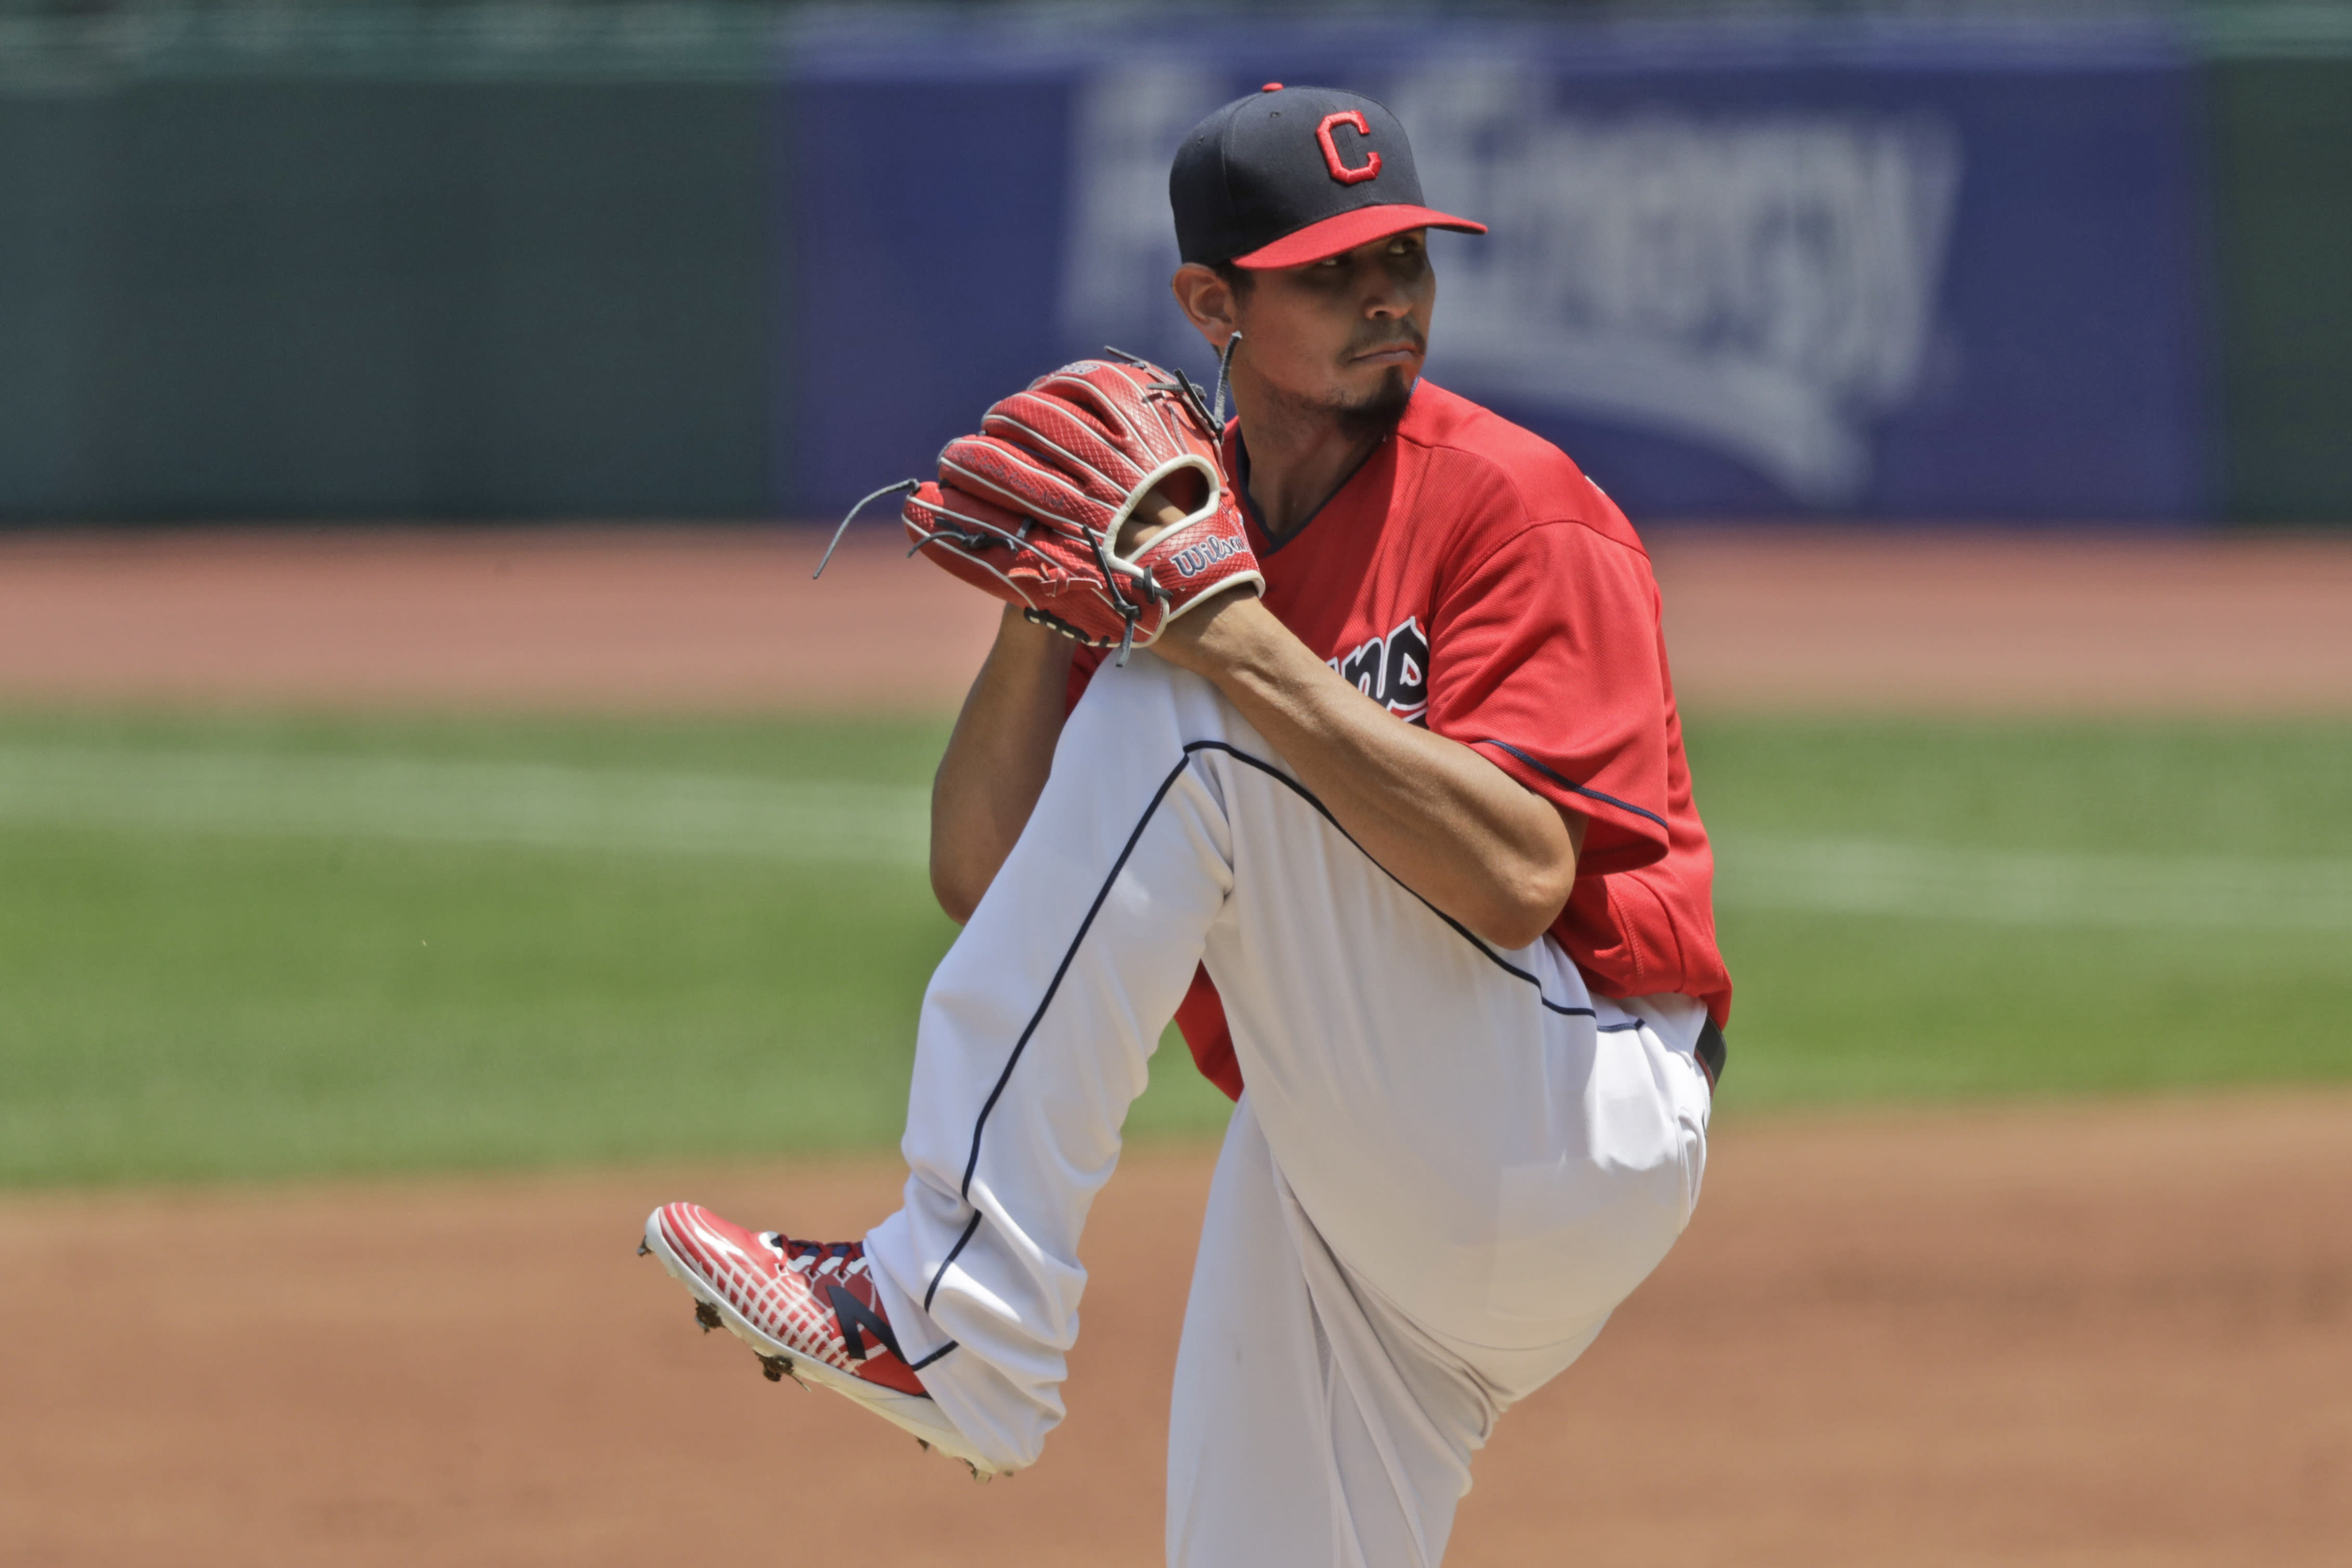 Cleveland Indians starting pitcher Carlos Carrasco winds up in the first inning in a baseball game against the Kansas City Royals, Sunday, July 26, 2020, in Cleveland. (AP Photo/Tony Dejak)